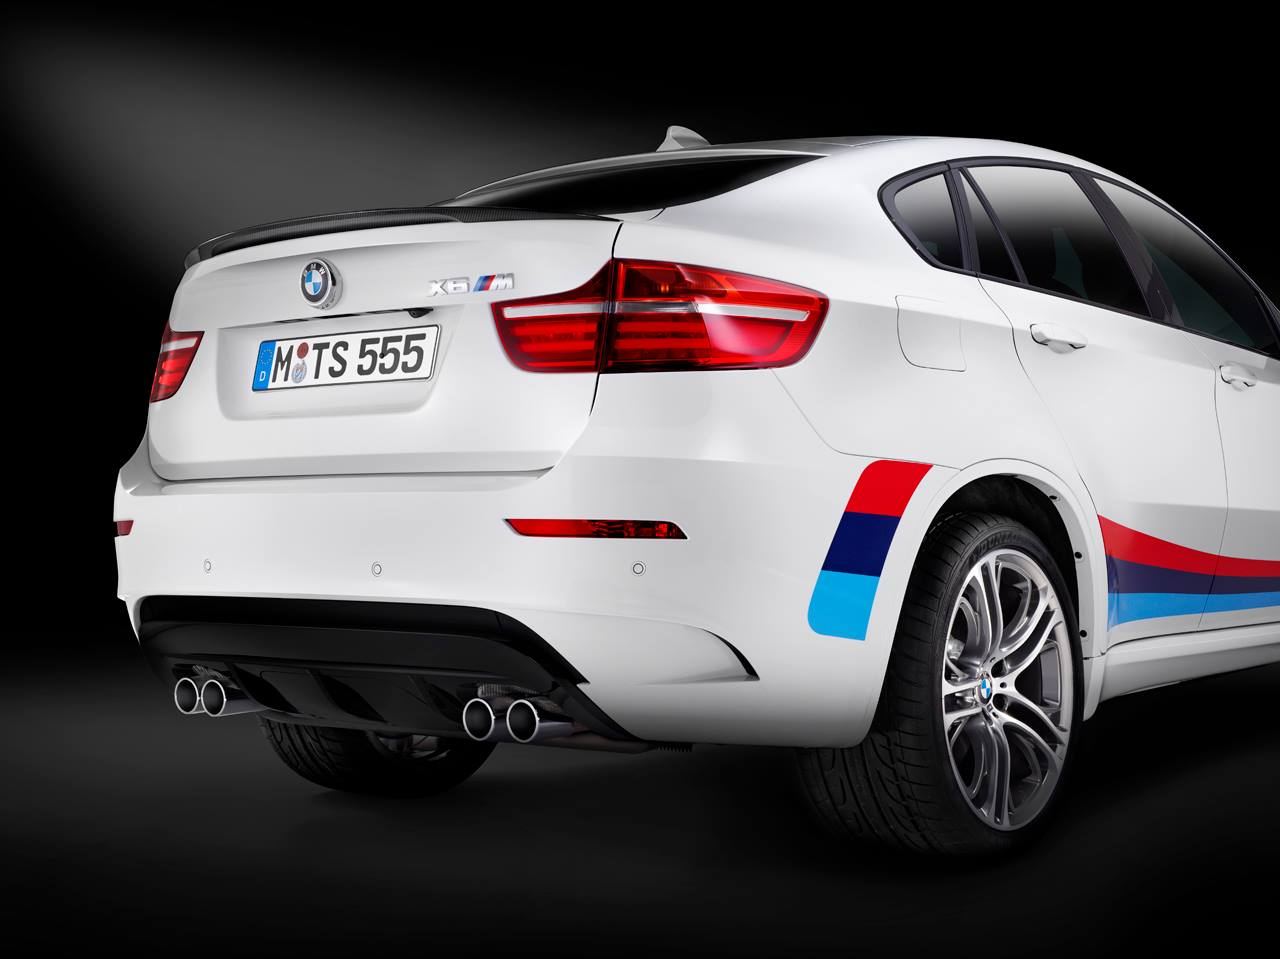 Limited Bmw X6 M Design Edition Model